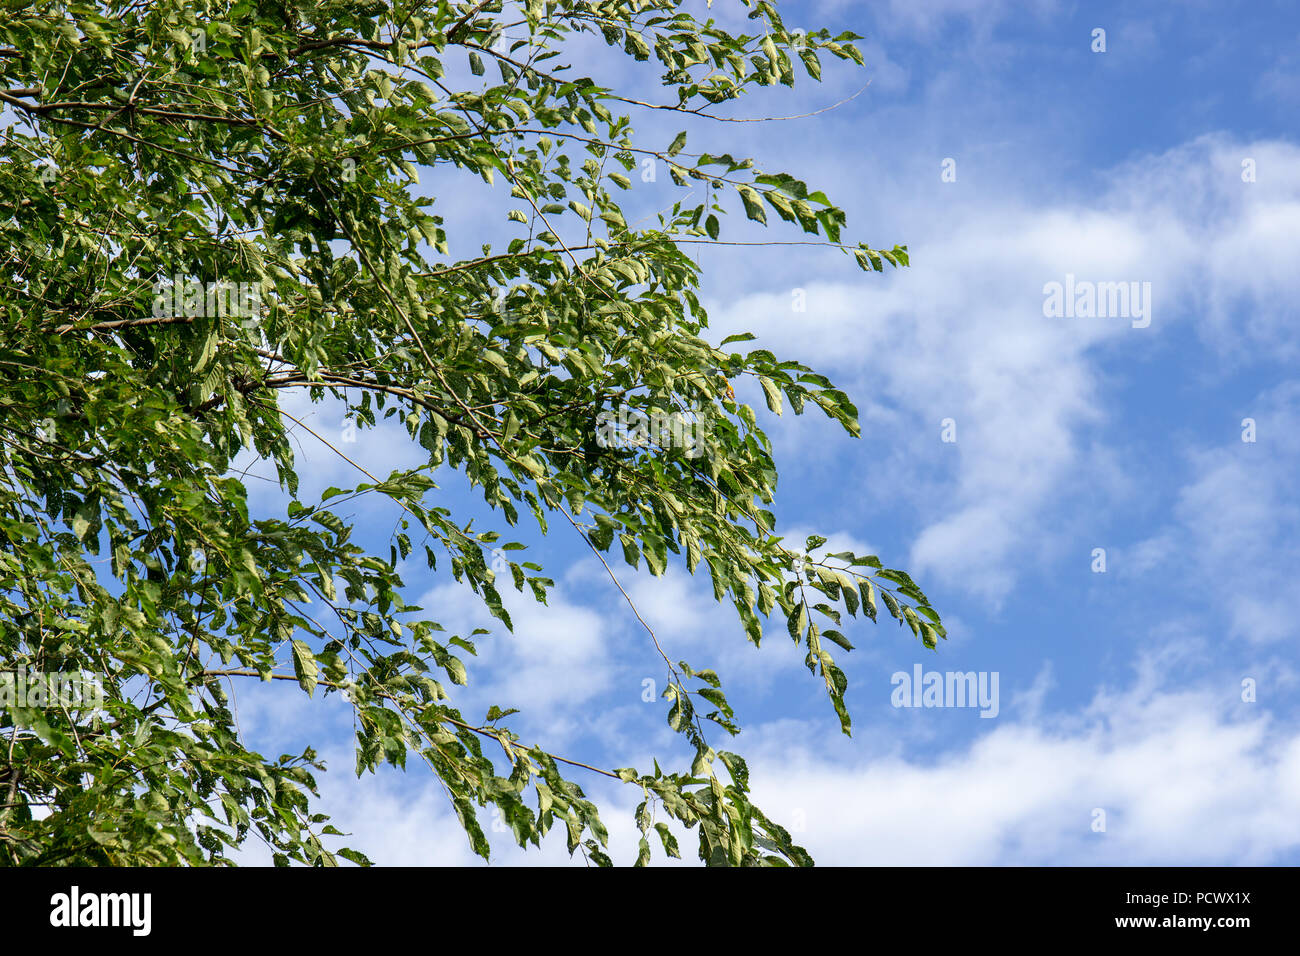 A tree, green leaves plant , blue sky , white clouds. - Stock Image